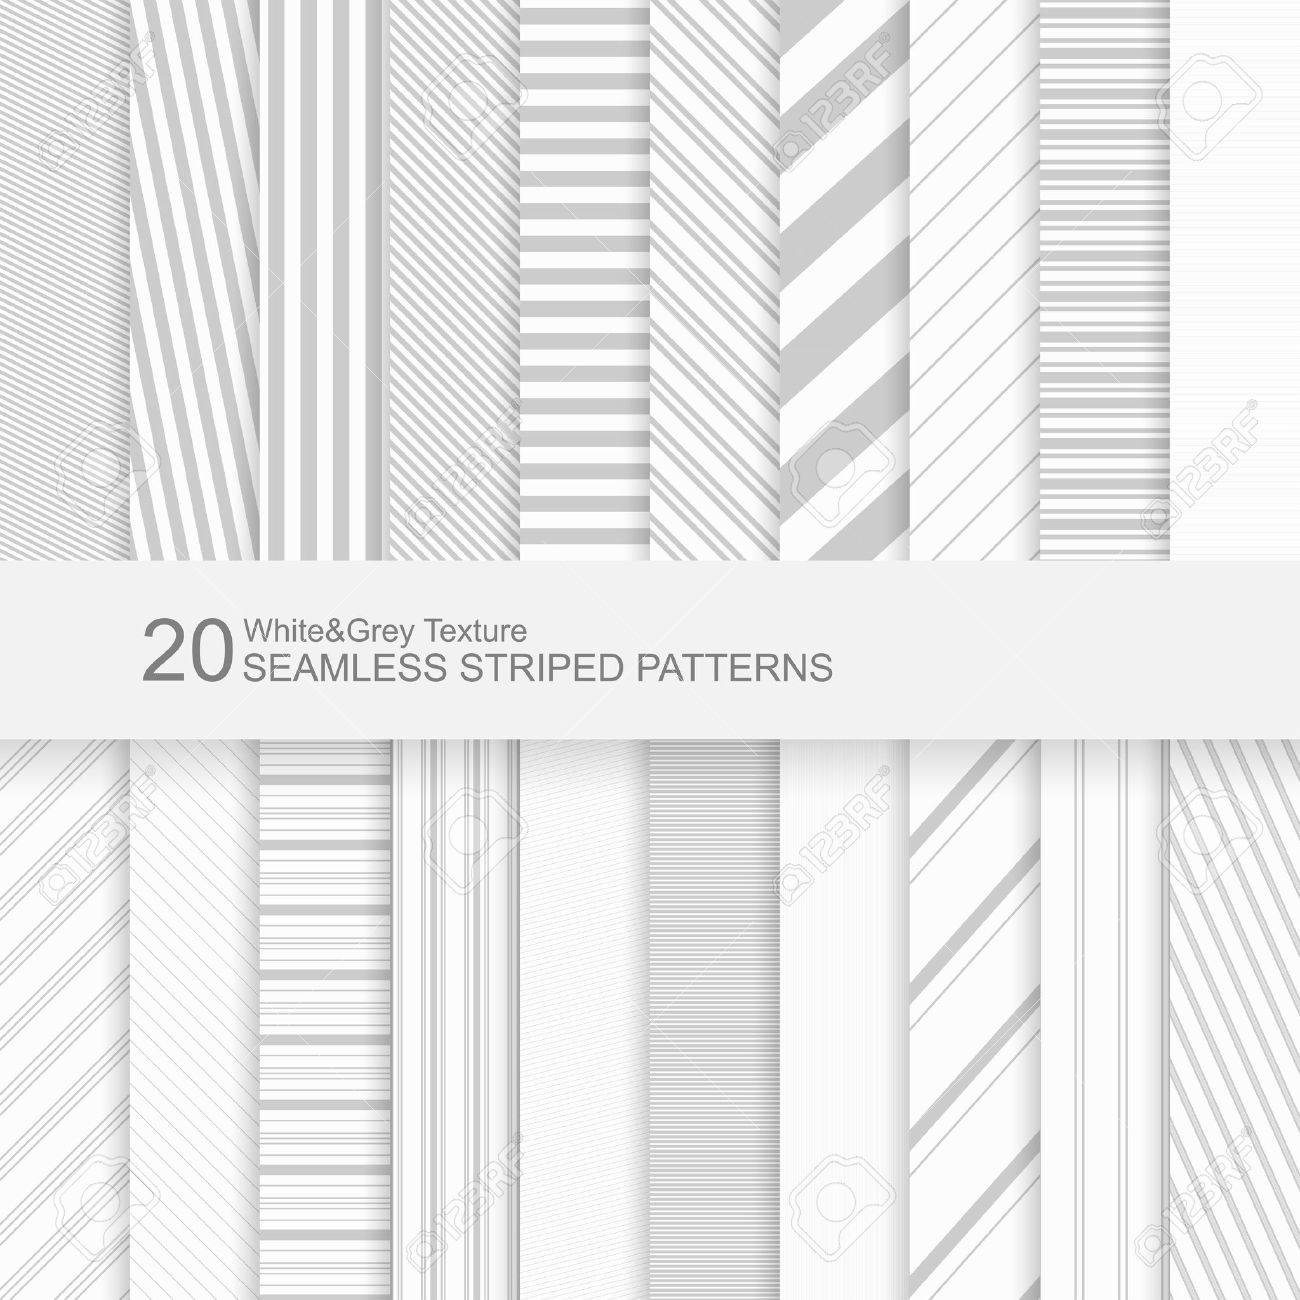 20 Seamless striped vector patterns, white and grey texture. - 50371748